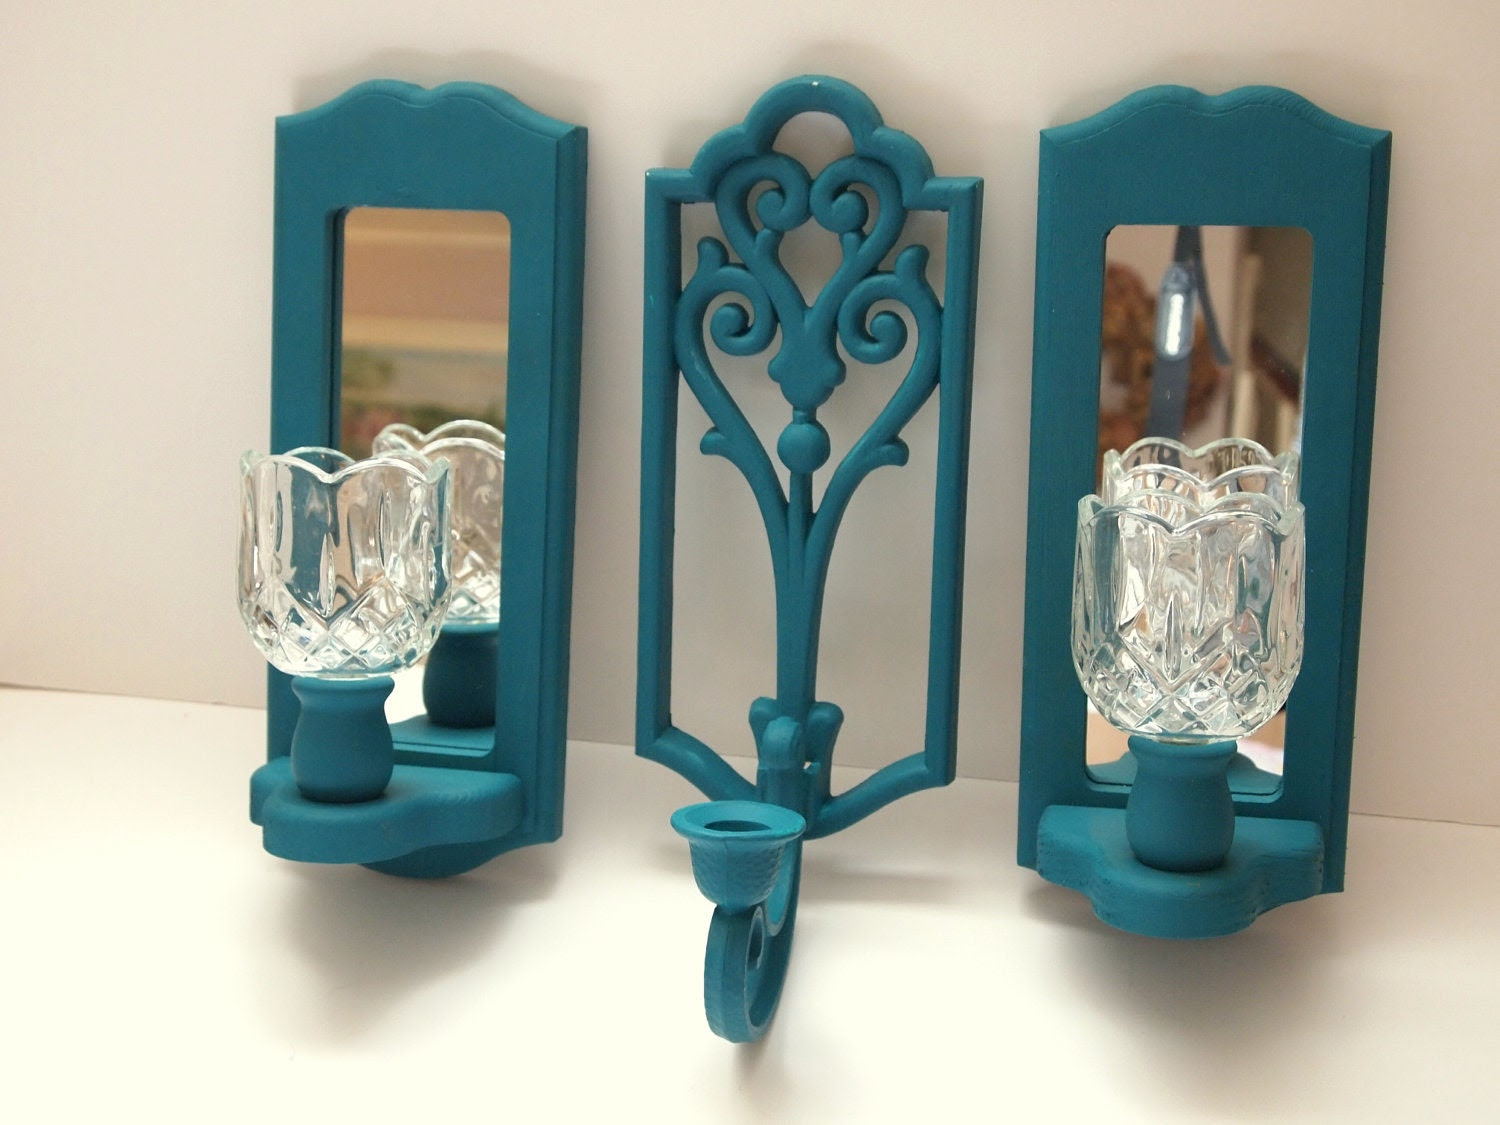 Mirror Wall Teal Candle Sconce Set of Three by MollyMcShabby